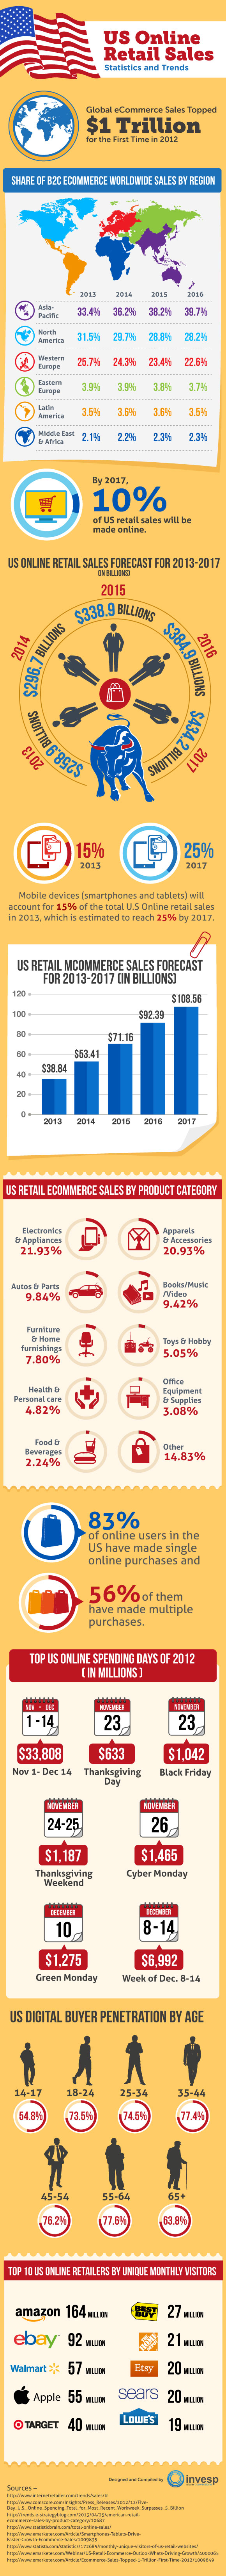 us-online-retail-sales--statistics-and-trends-infographic_51d840234fe51